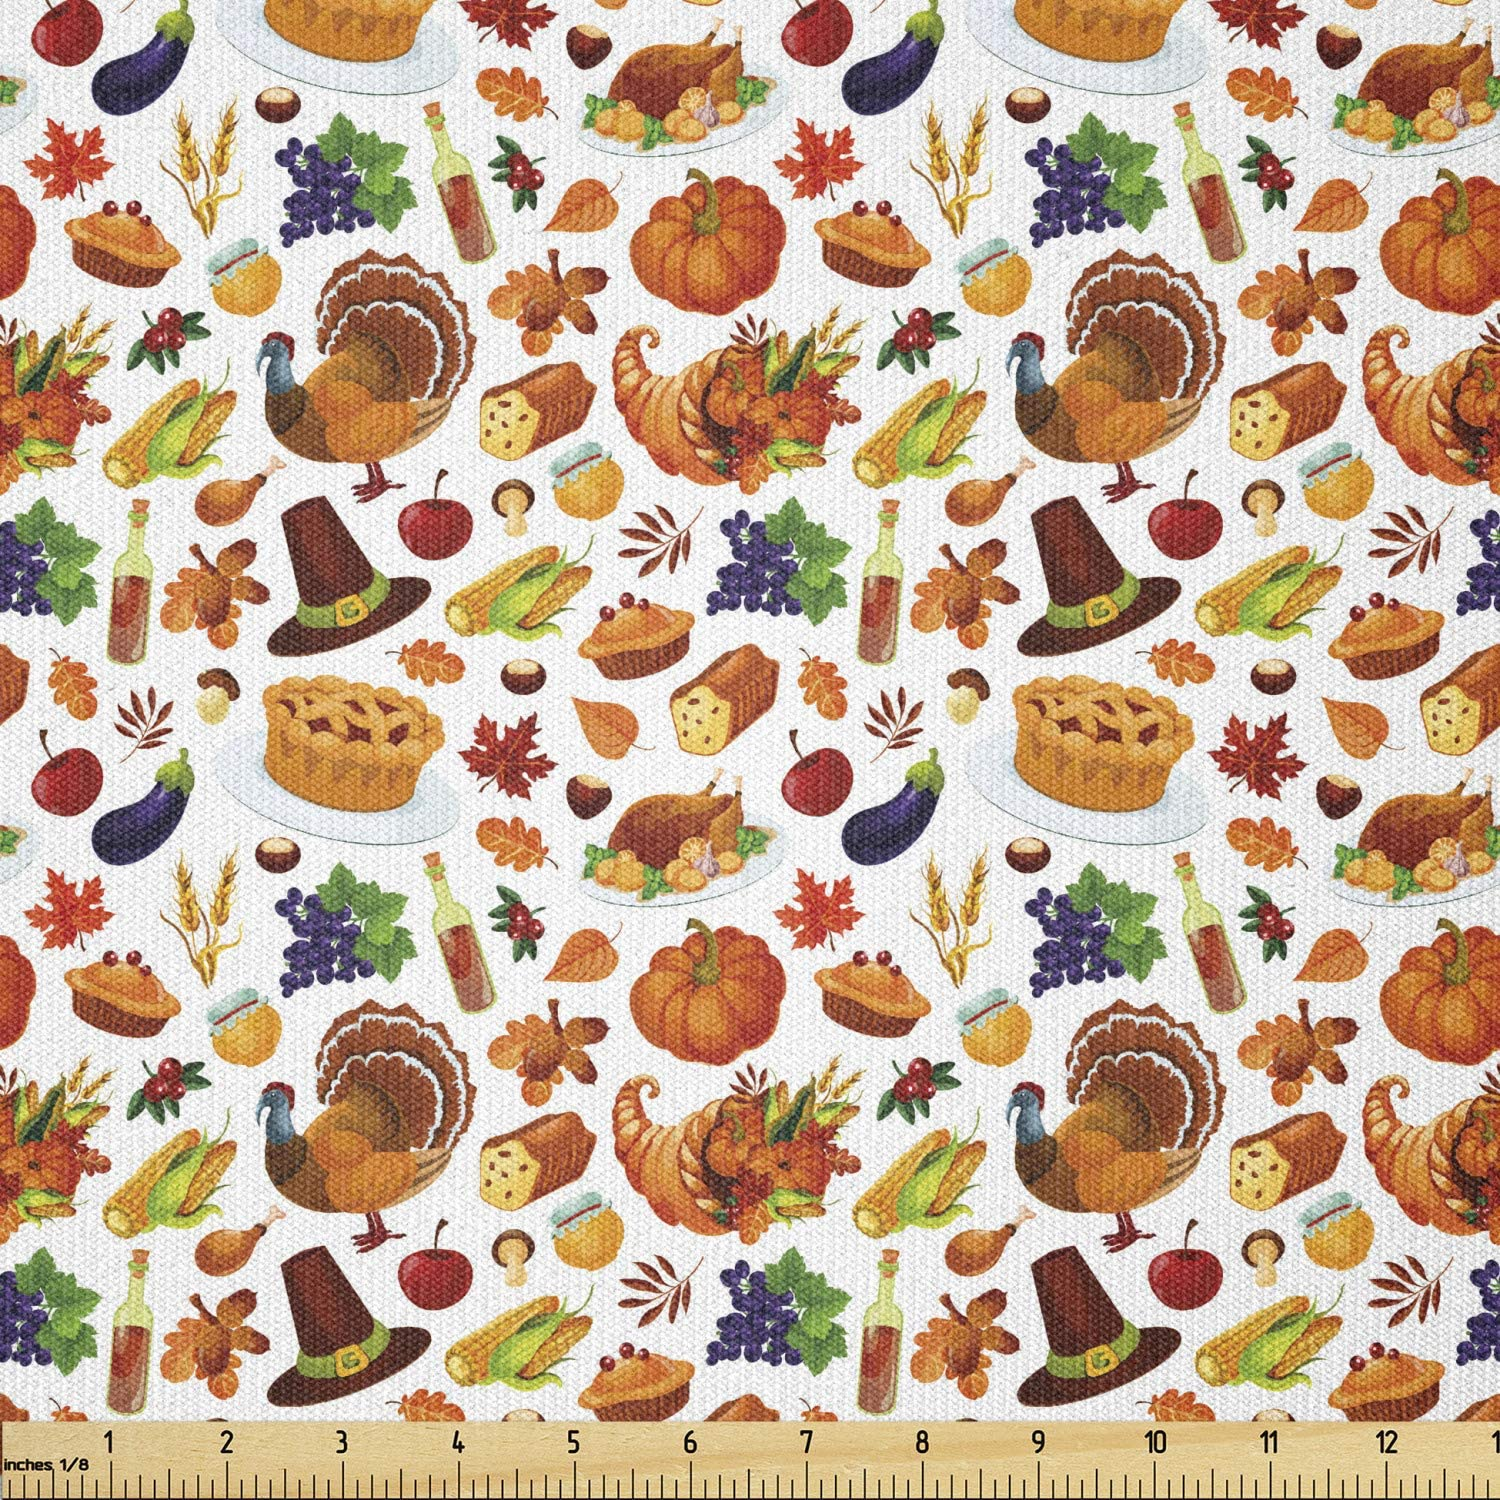 Lunarable Thanksgiving Fabric by The Yard, Food Abundance Autumn Harvest Traditional Celebration Dinner Pattern, Stretch Knit Fabric for Clothing Sewing and Arts Crafts, 1 Yard, Orange Brown